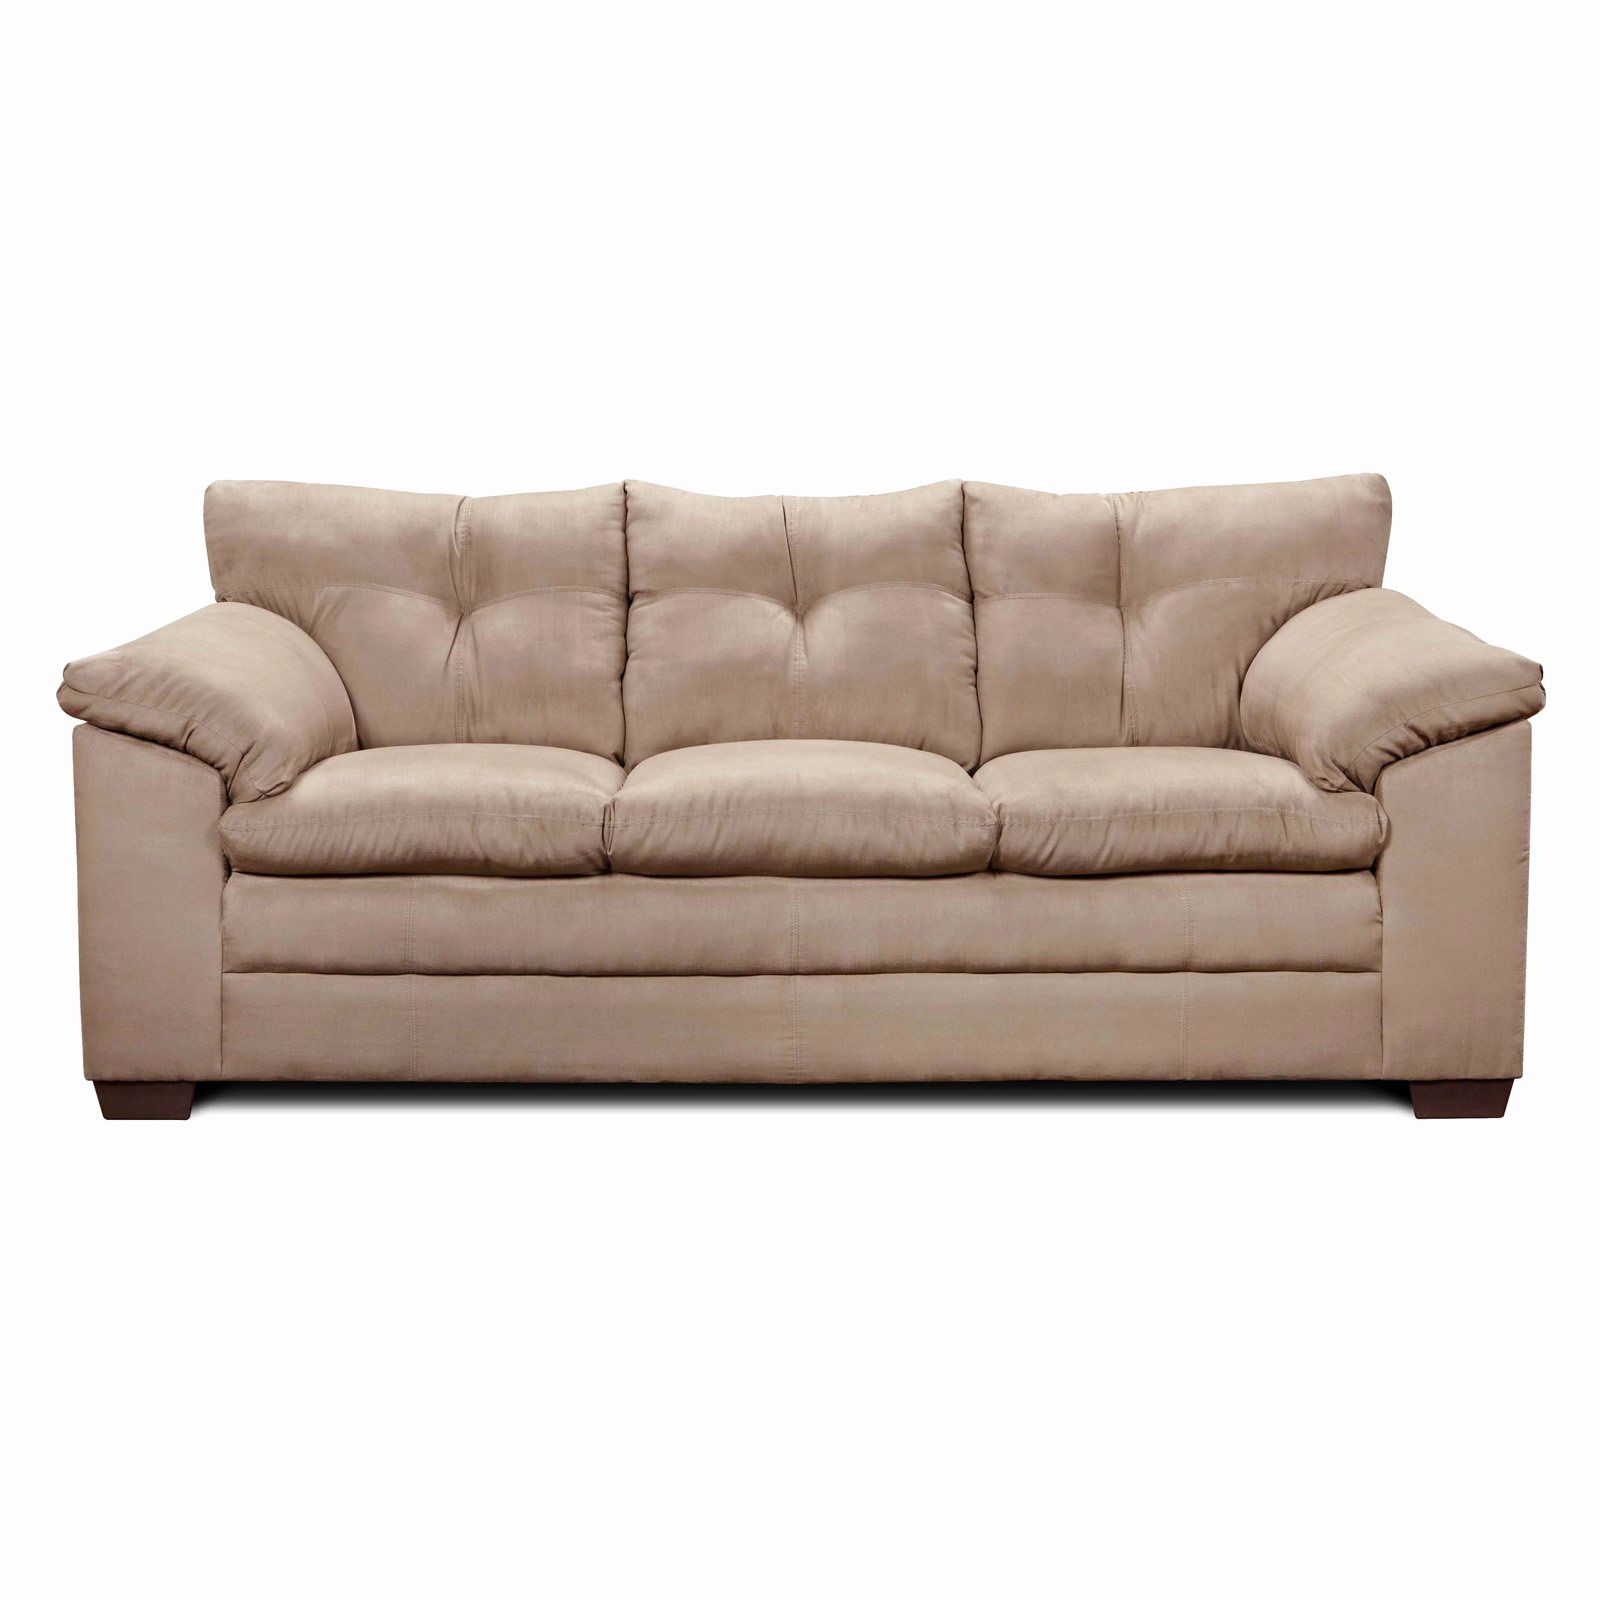 couch microfiber articles how s a angie list clean htm to